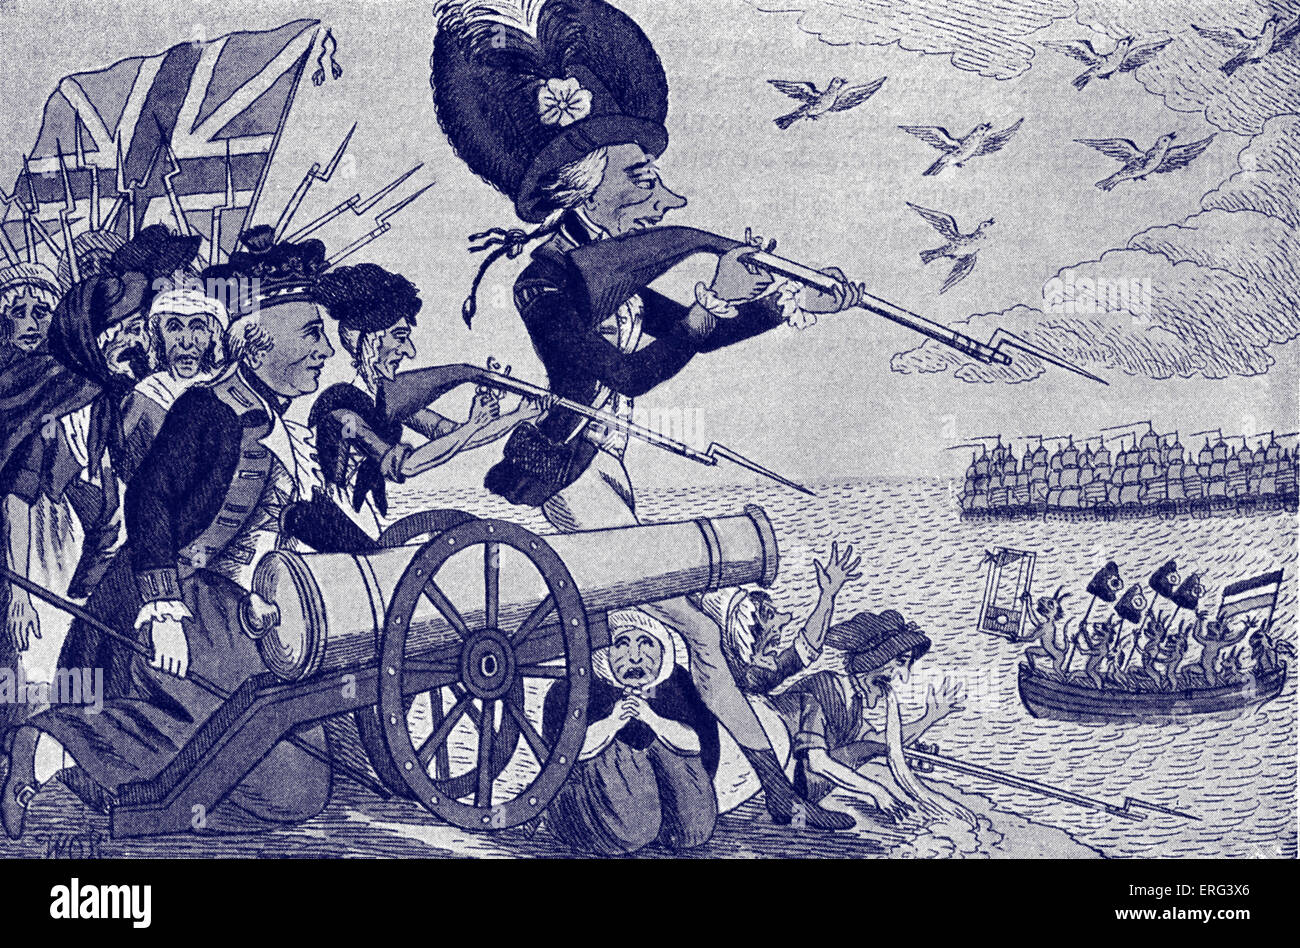 Napoleon 's planned invasion of England.  Contemporary caricature showing British troops firing on French revolutionaries - Stock Image